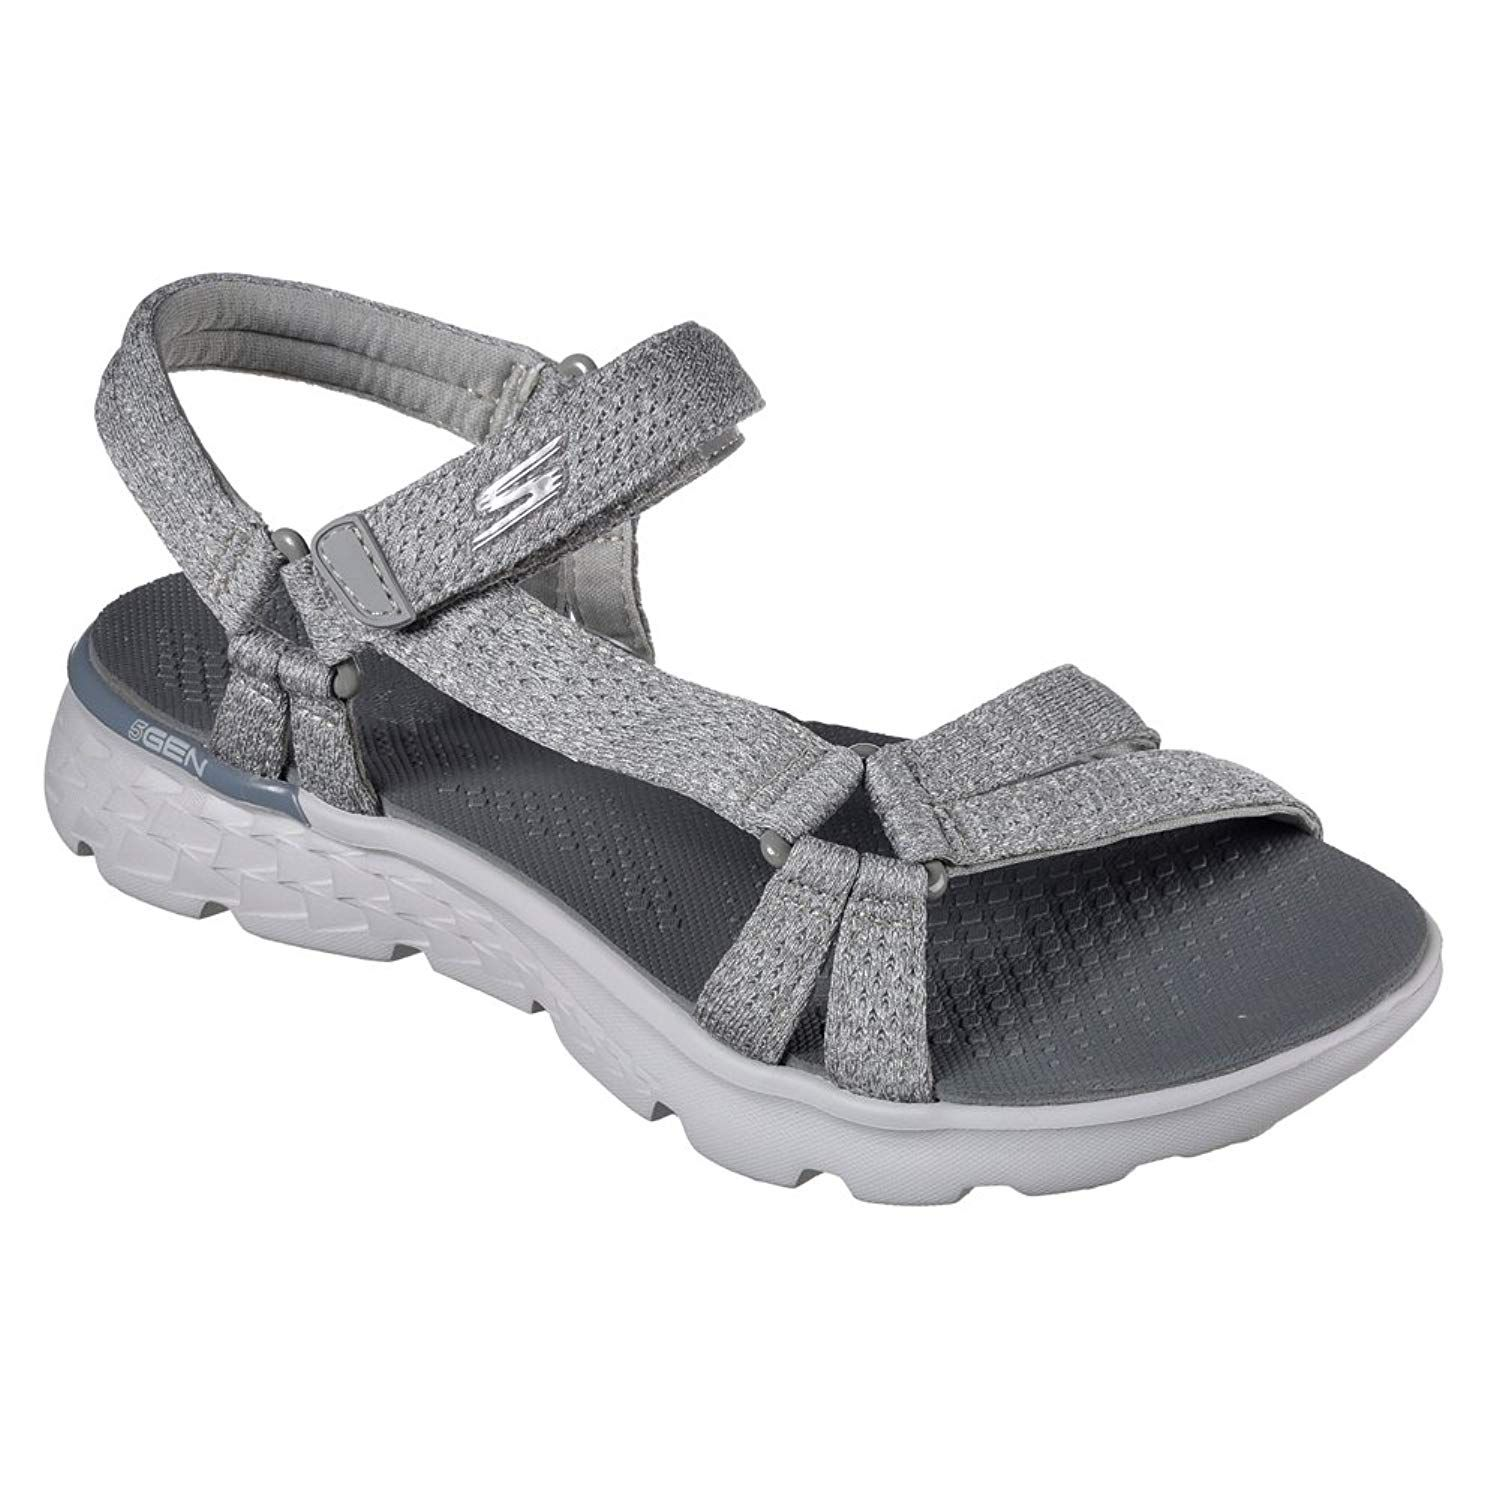 Skechers Women S On The Go 400 Bouncy Sandals We Do Hope You Actually Love Our Image This Is Our Af Skechers Women Women Sport Sandals Skechers On The Go